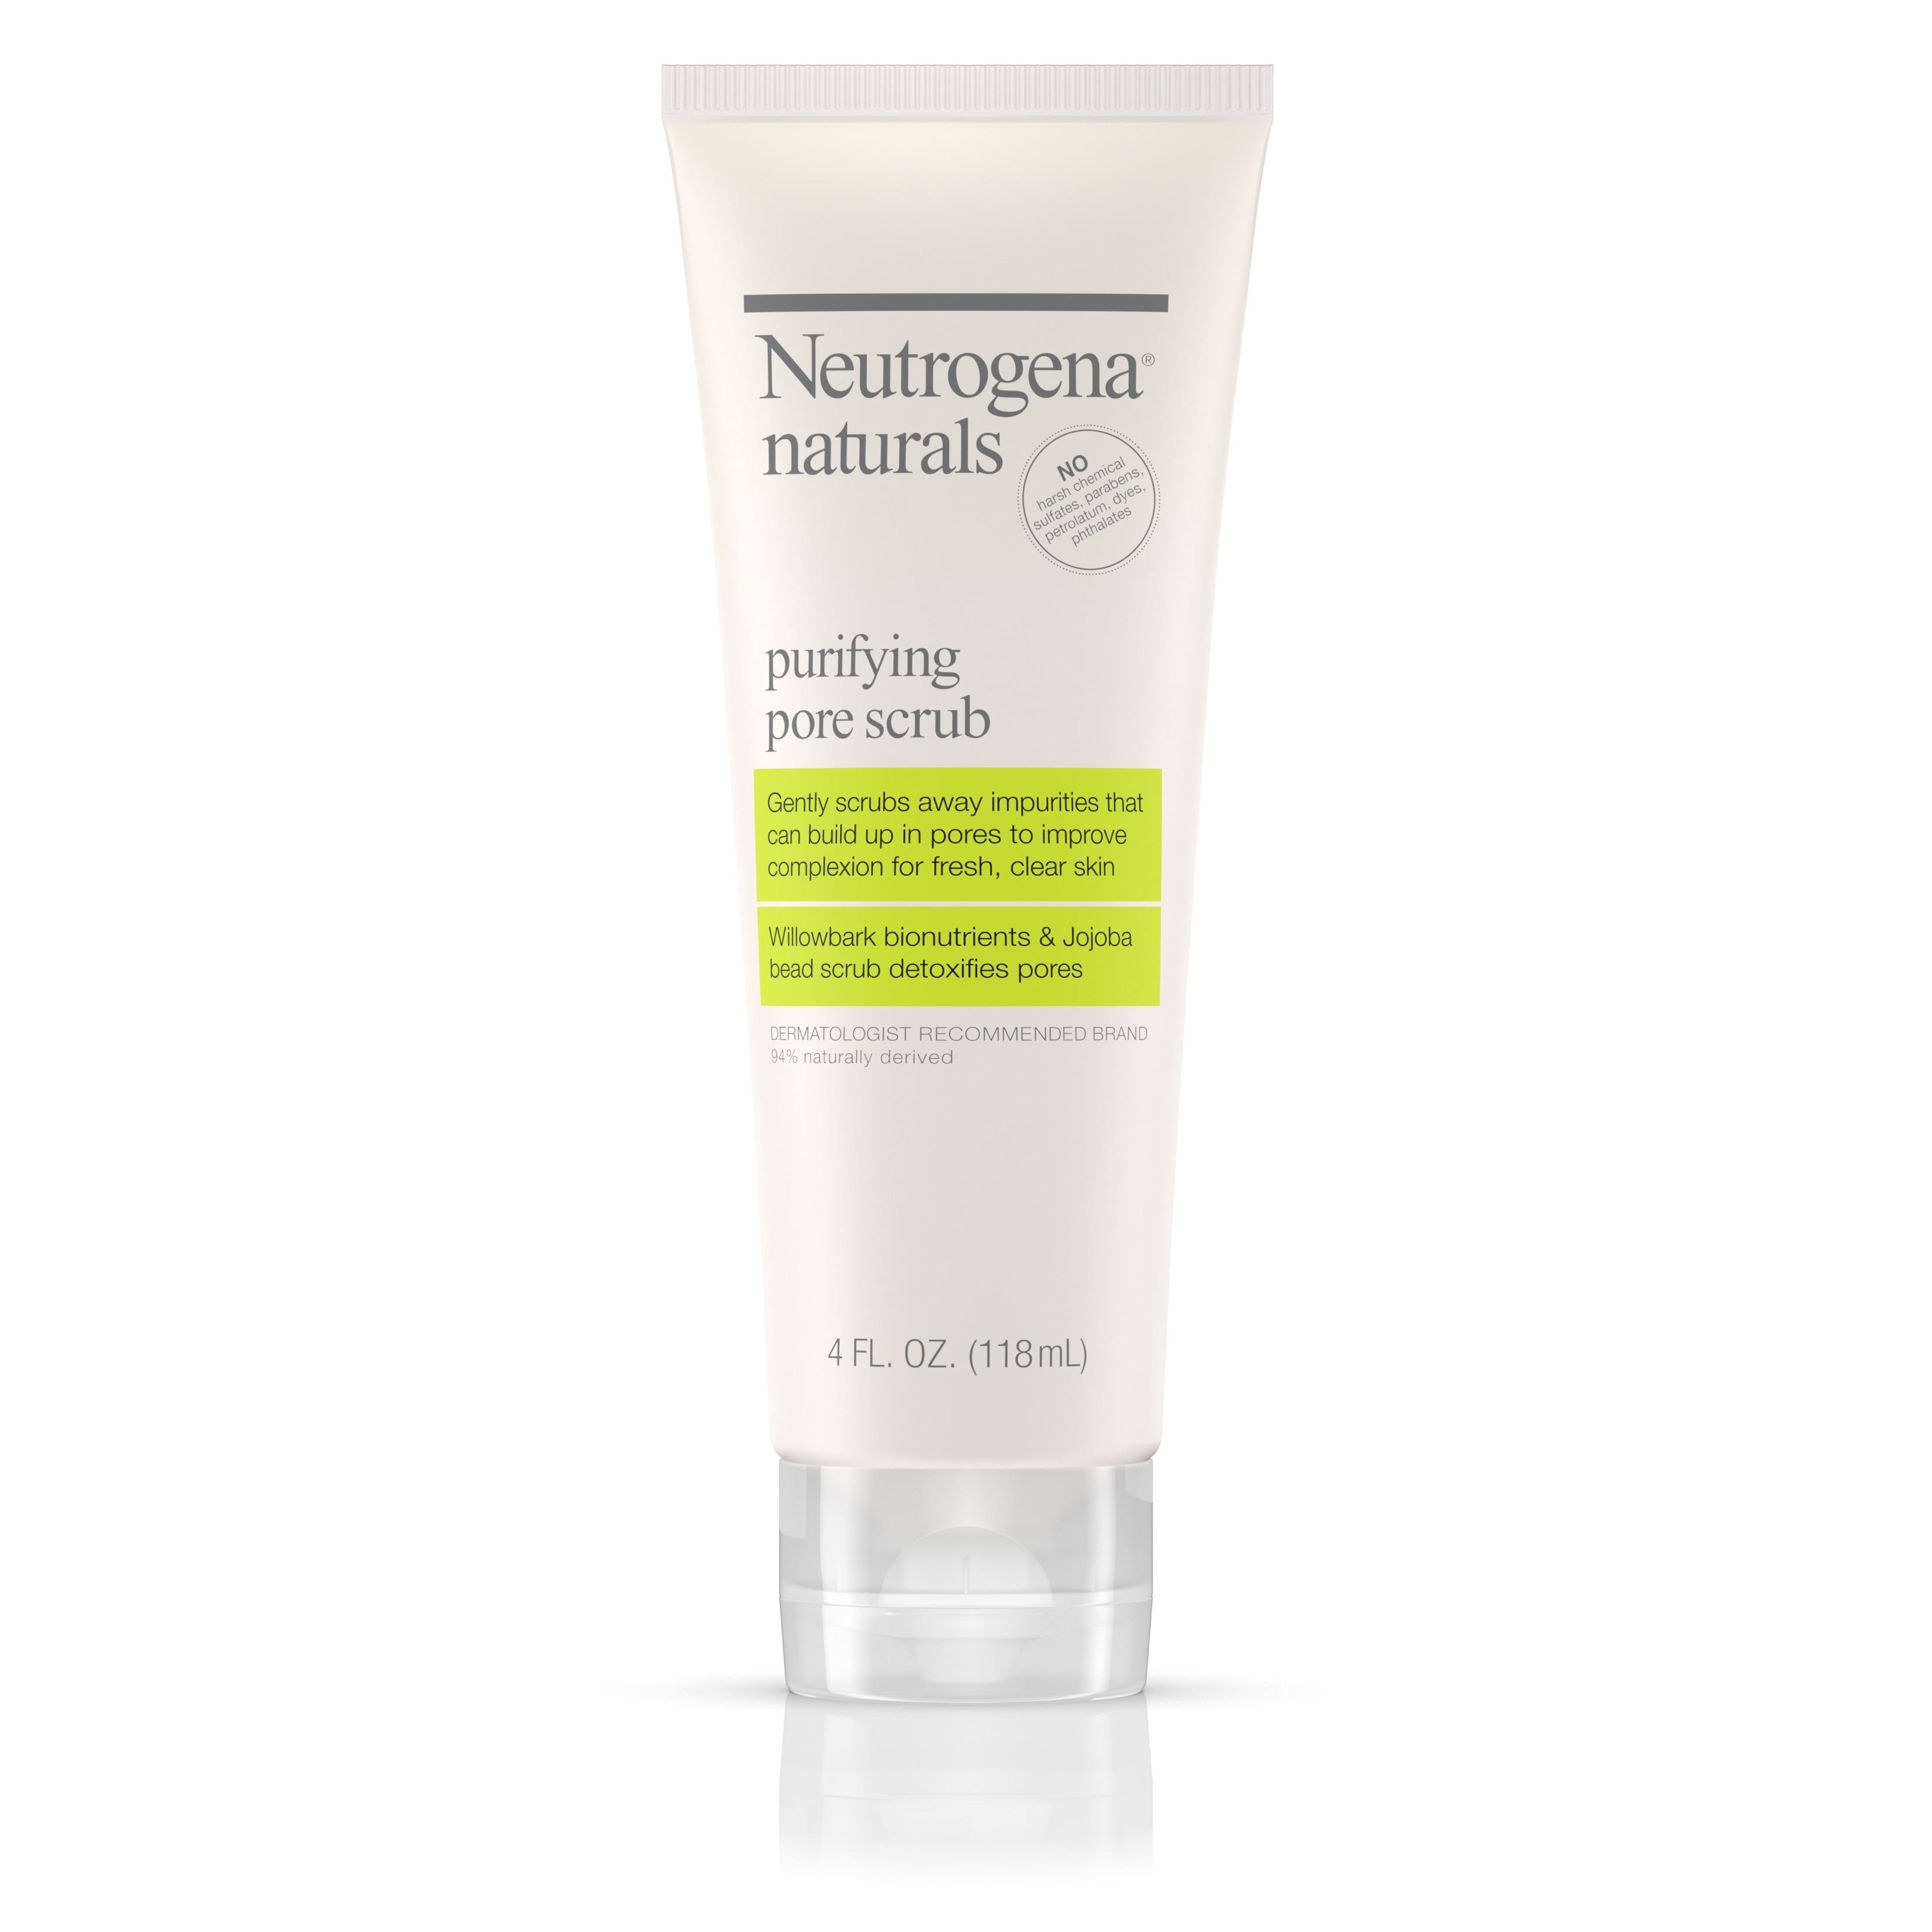 Neutrogena Naturals Purifying Pore Scrub - 4oz